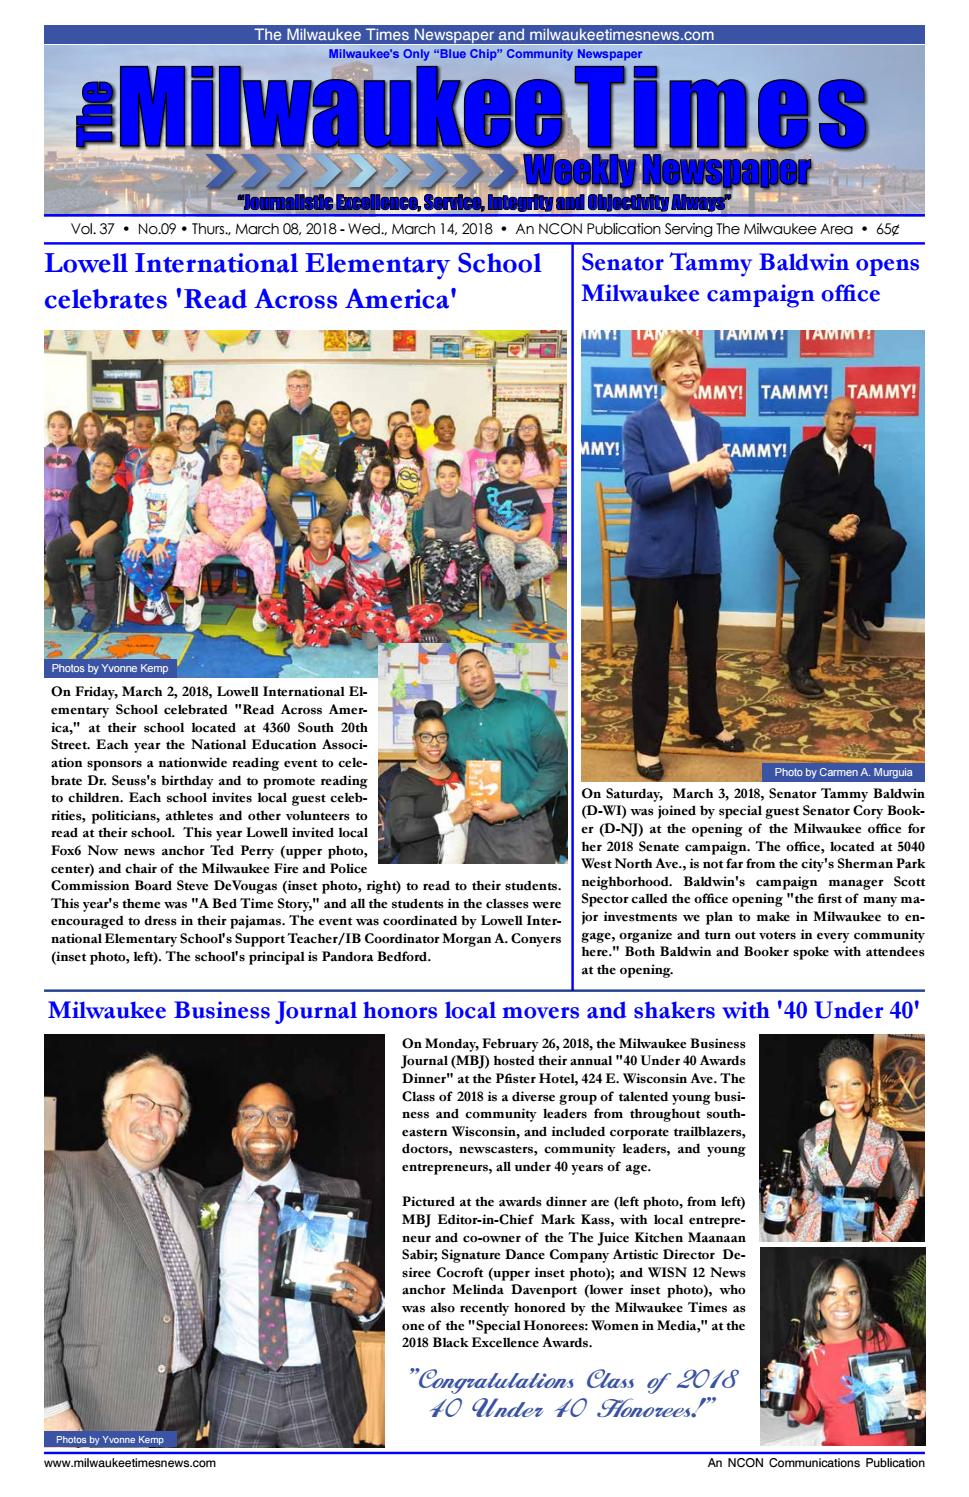 Miltimes 03 08 18 16 pgs by Milwaukee Times News - issuu